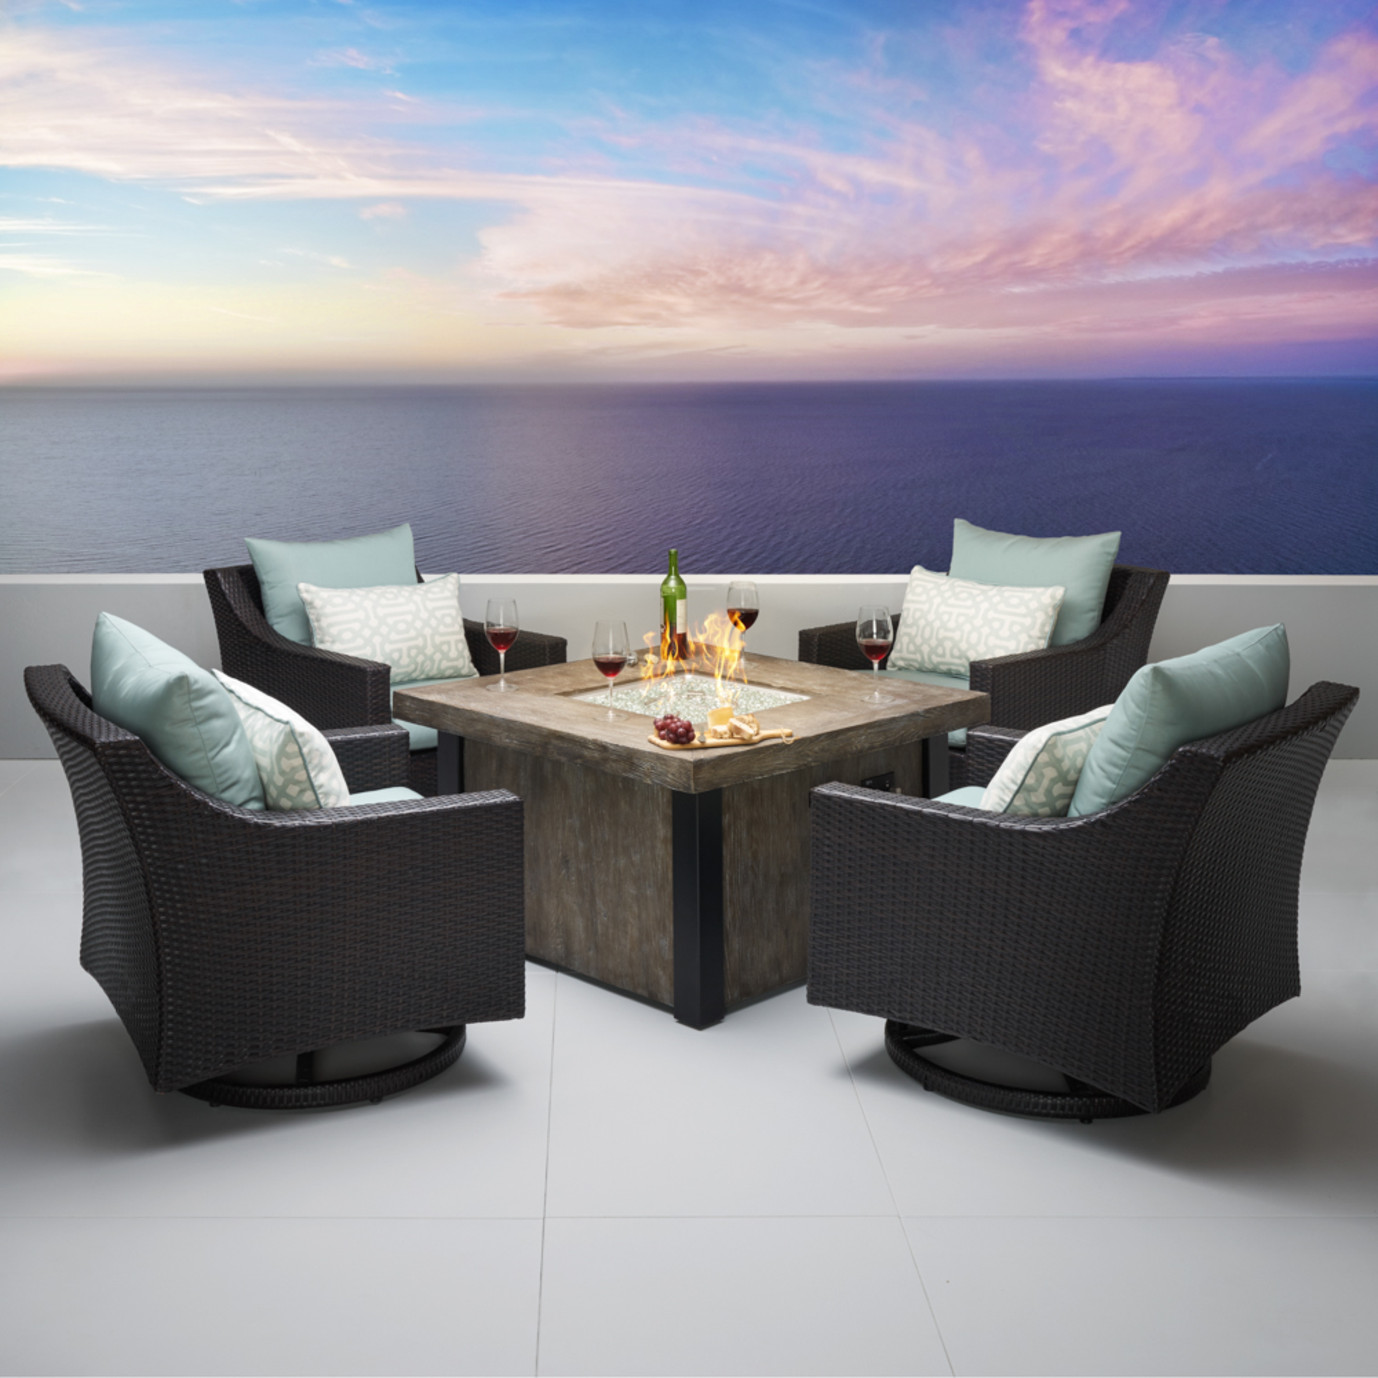 Deco™ 5pc Motion Fire Chat Set - Spa Blue